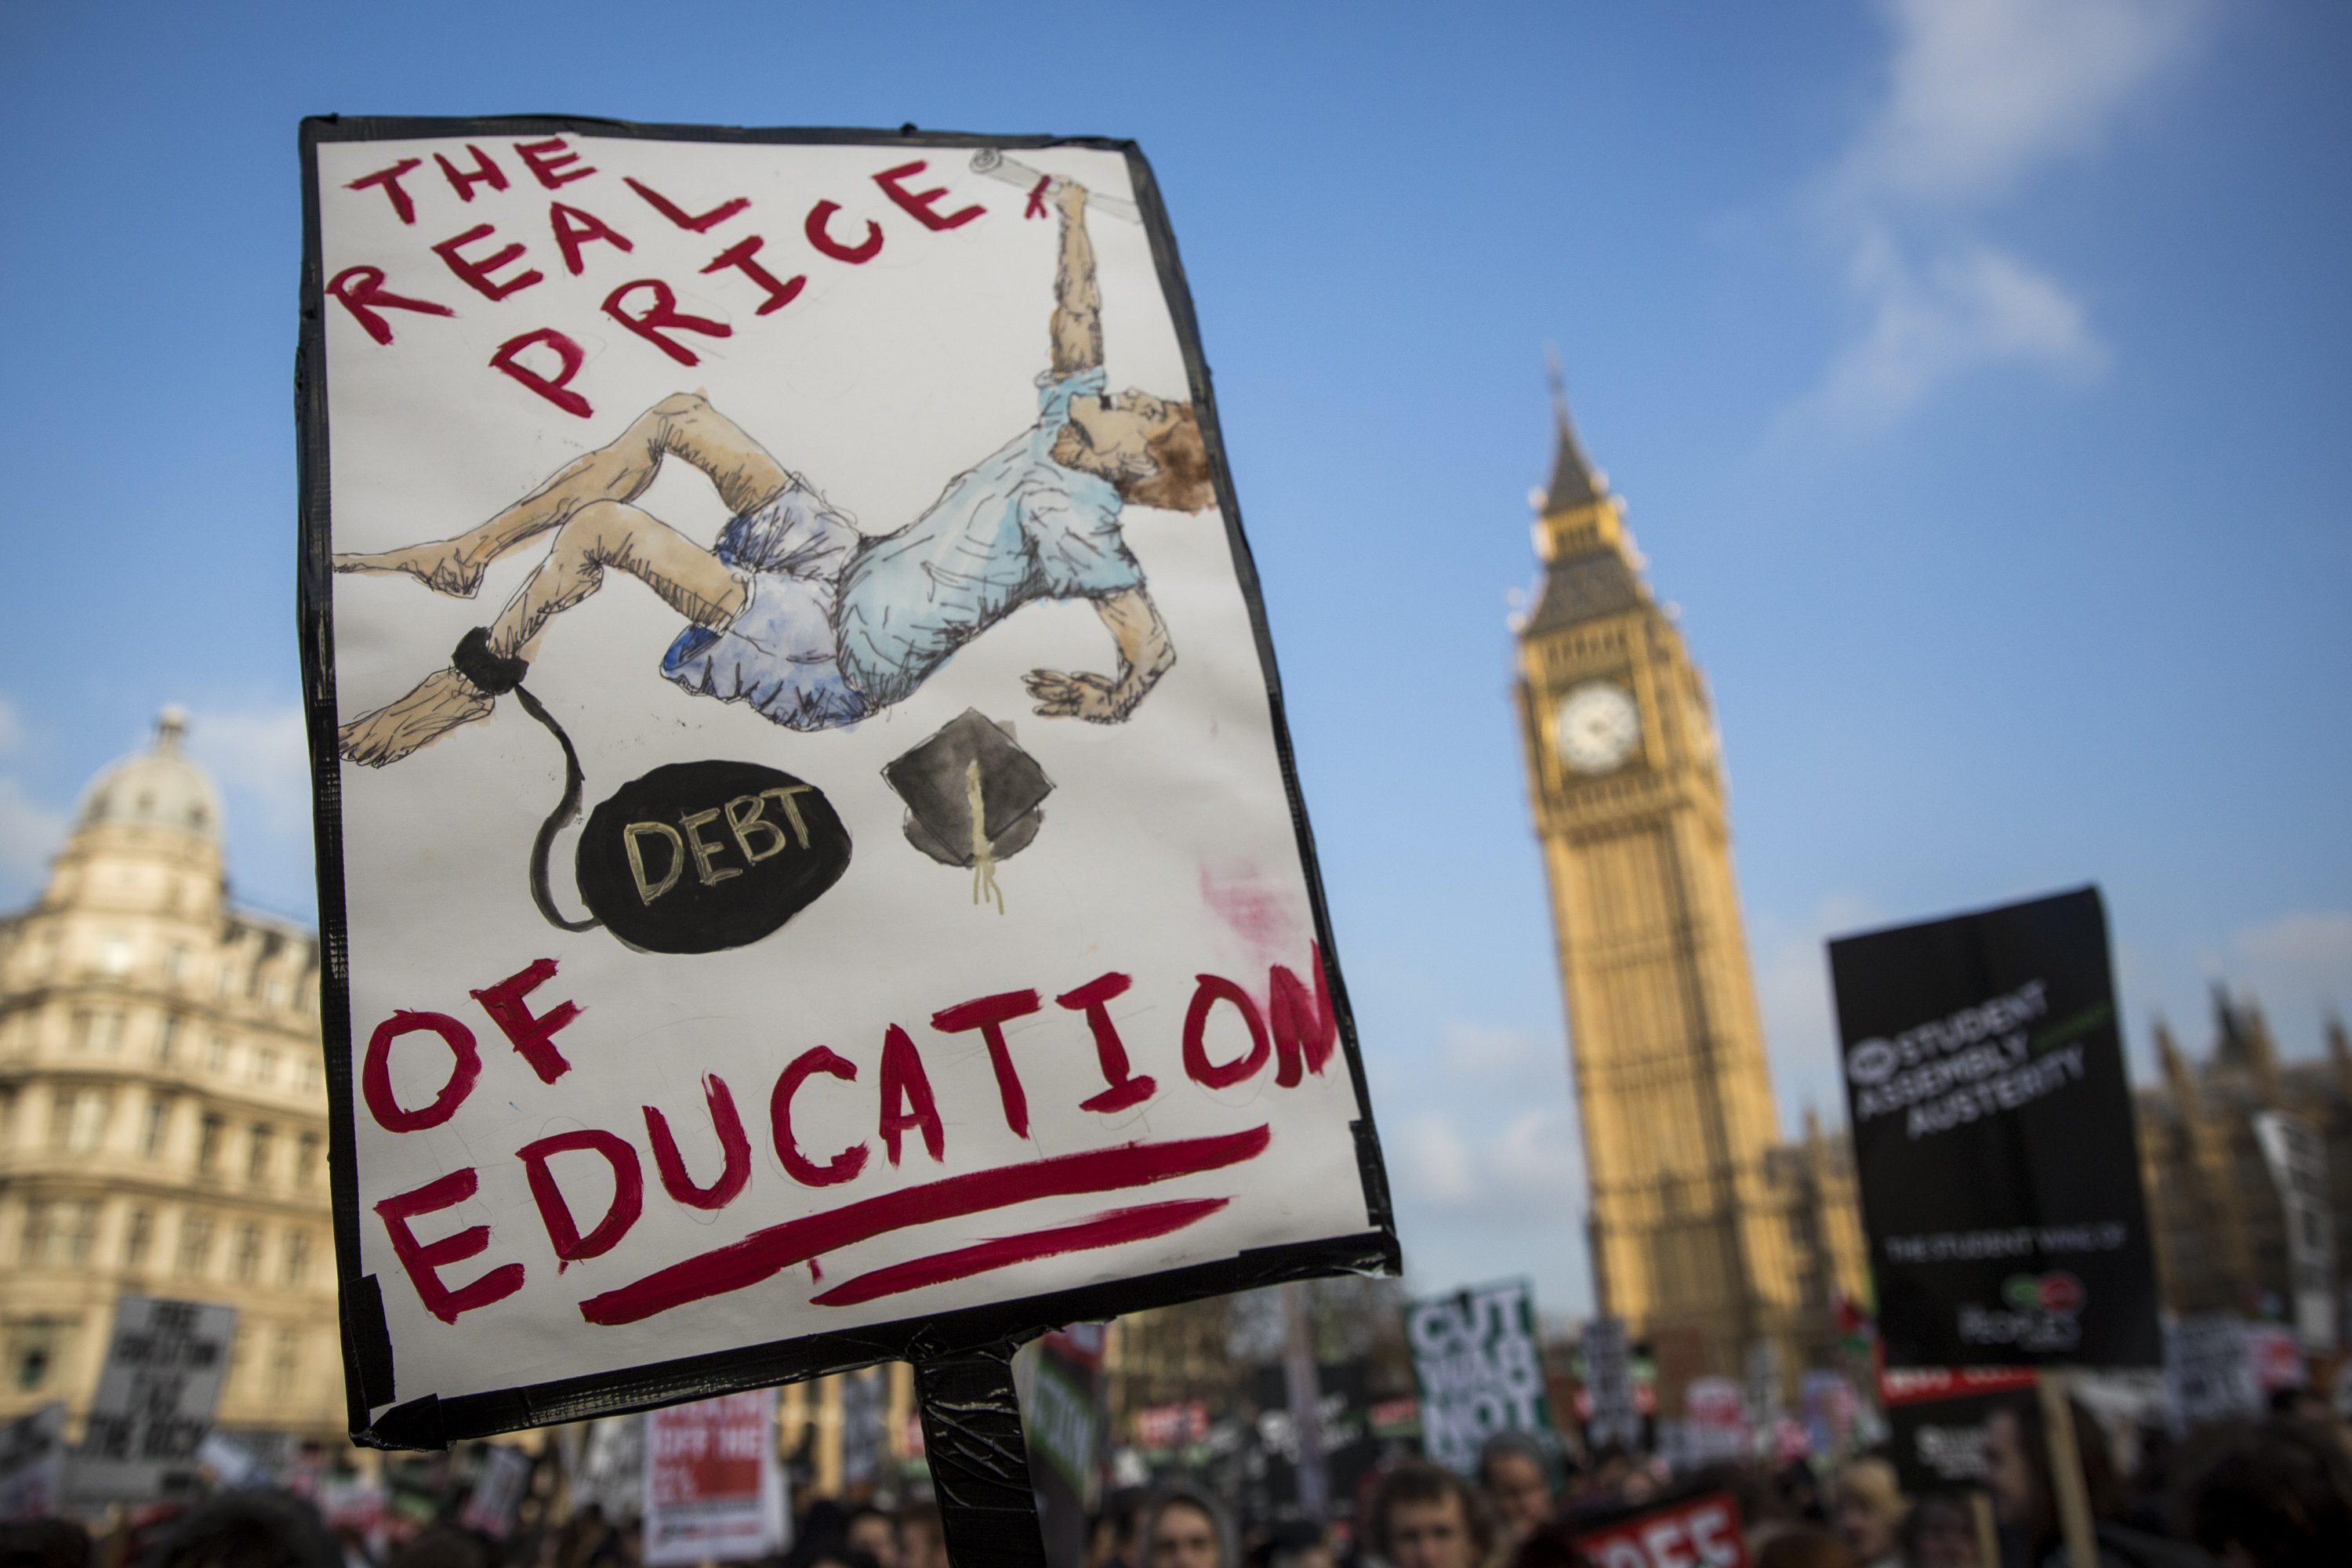 Protestors in London march against increasing debt from student loans